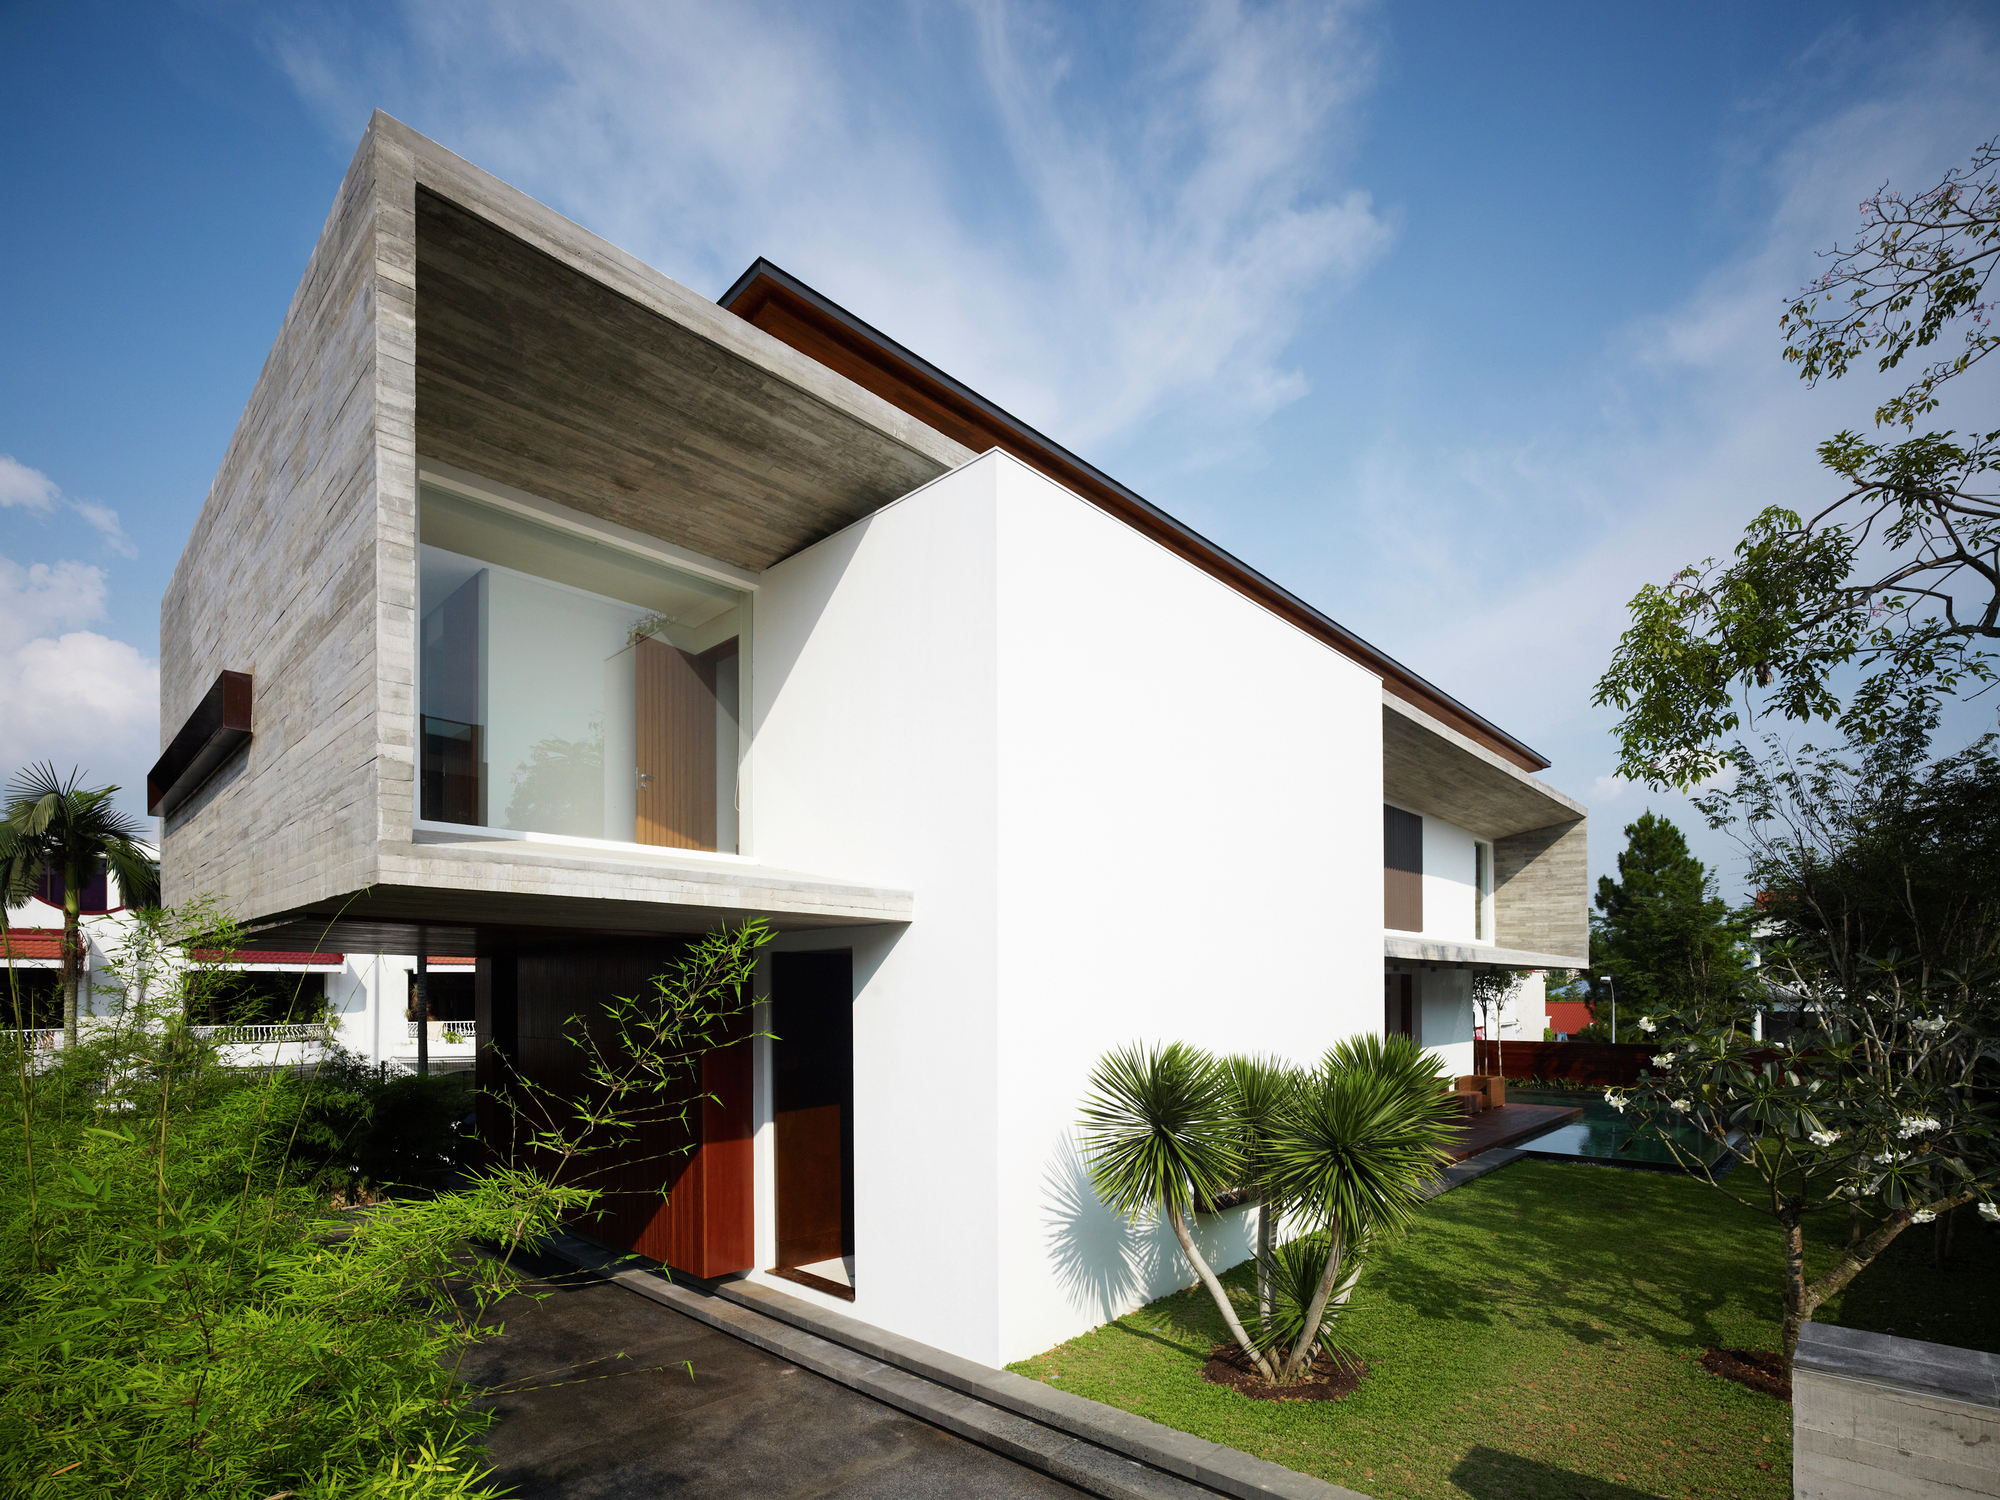 Galer a de m house ong ong architects 16 for Classic minimalist house design